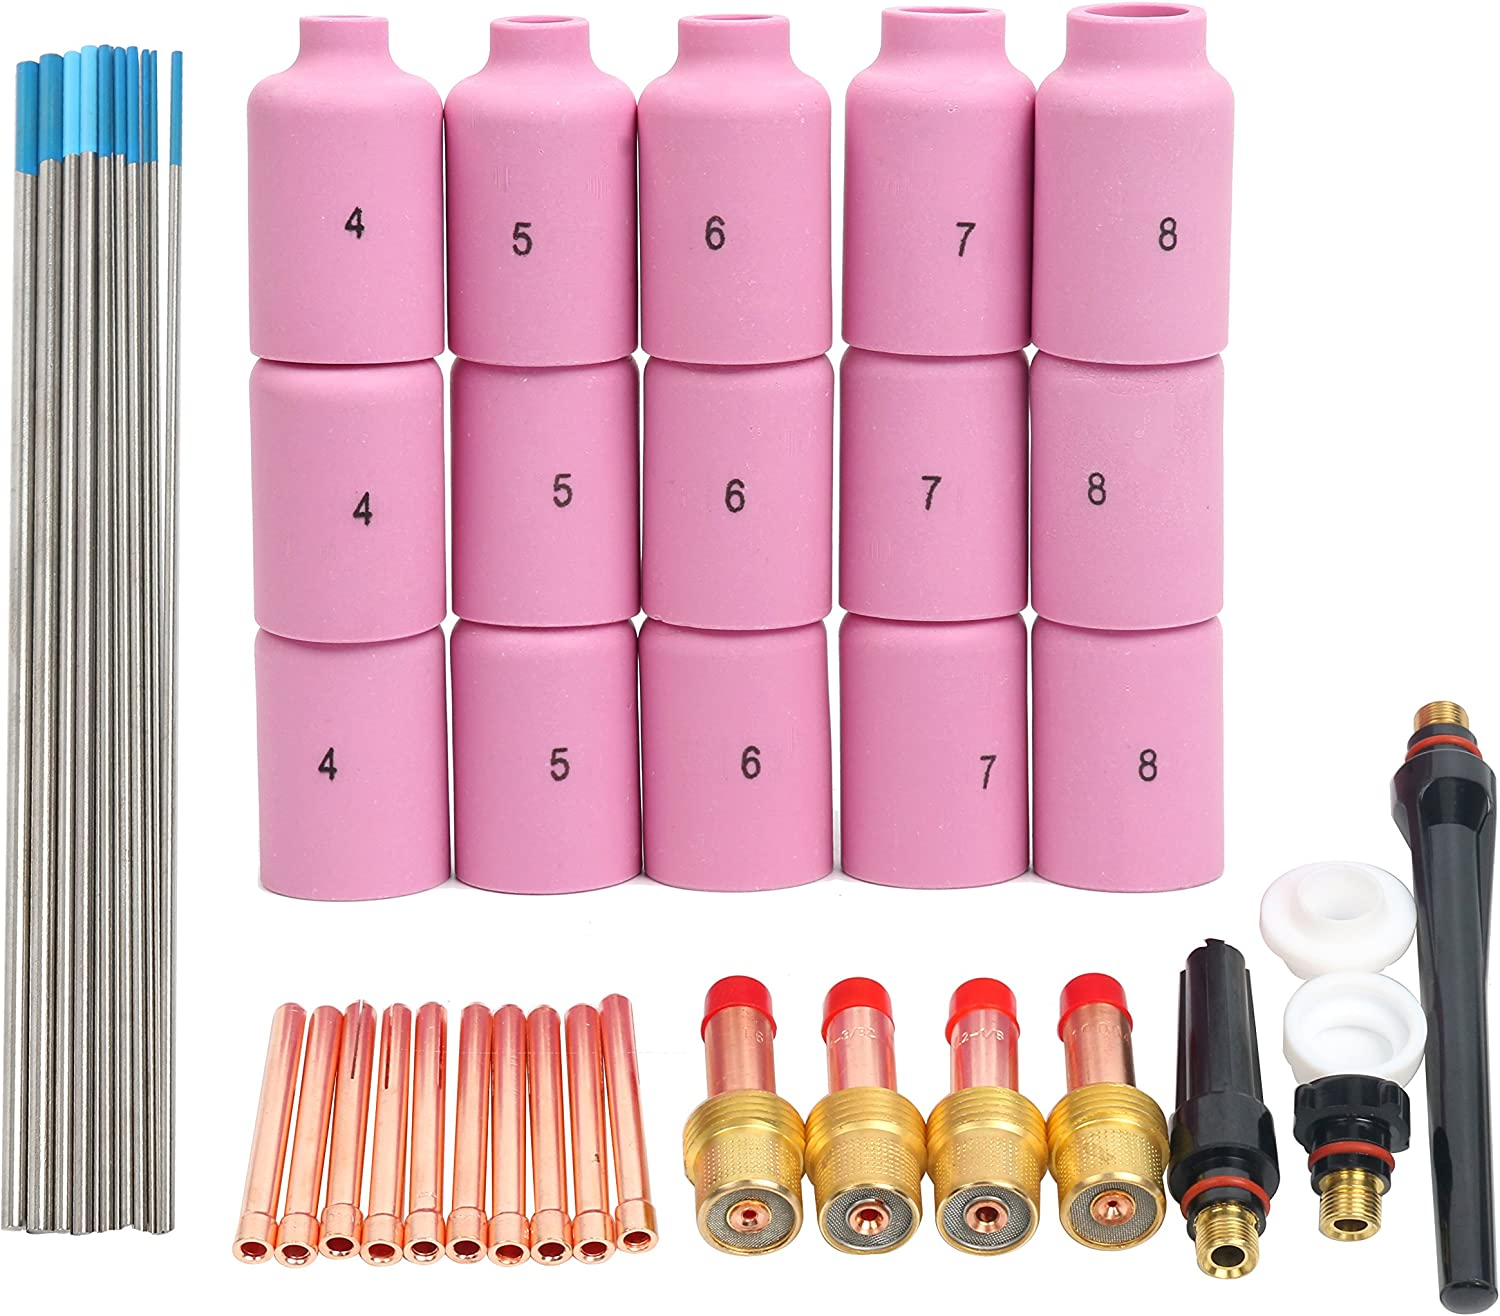 46Pcs Tig Kit Gas Lens For Wp-17 Wp-18 Wp-26 WL20 Torch Accessories Spares